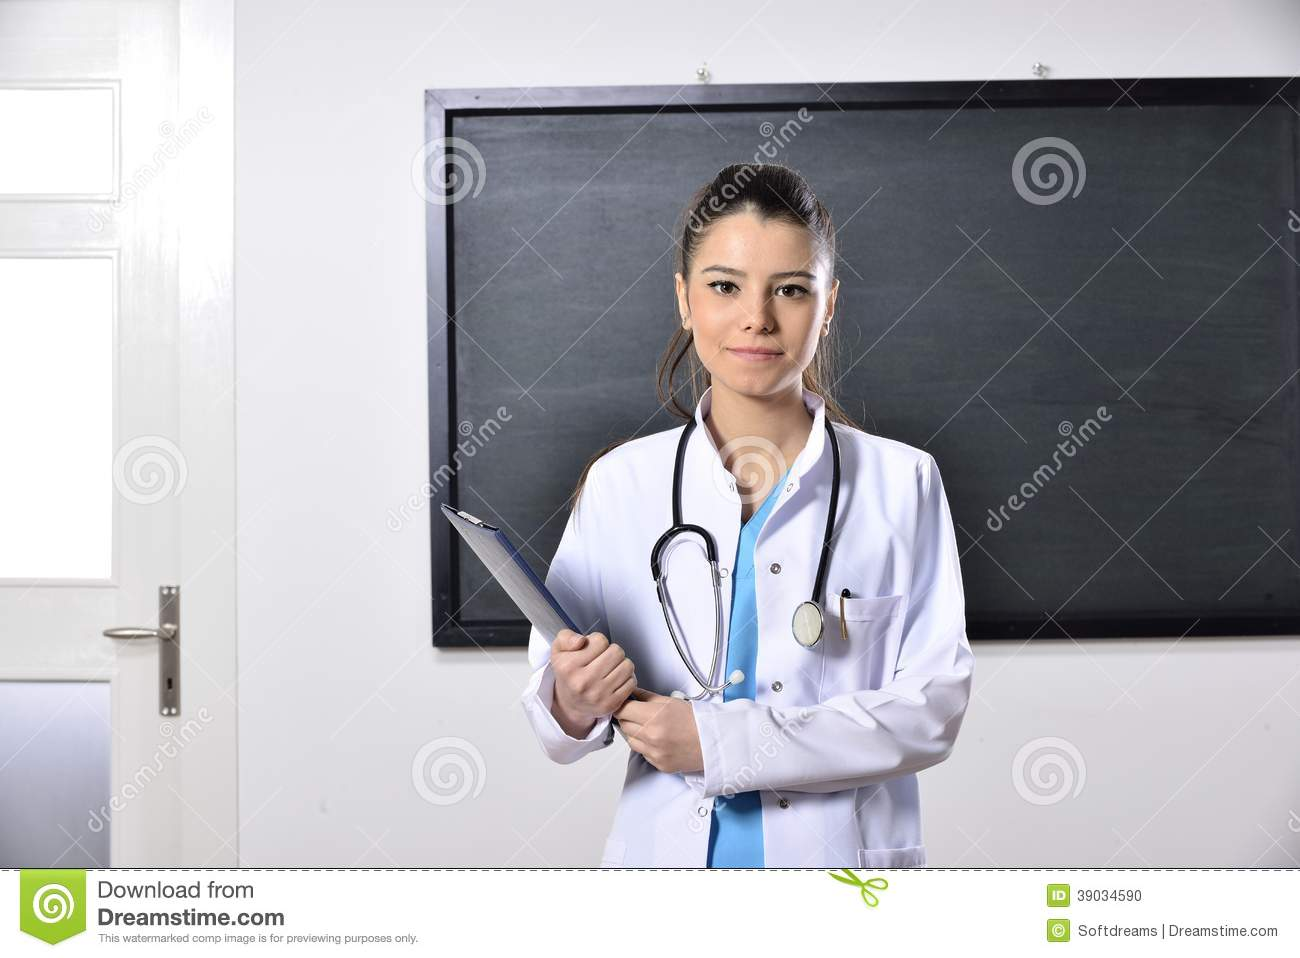 Dating a girl who is in med school